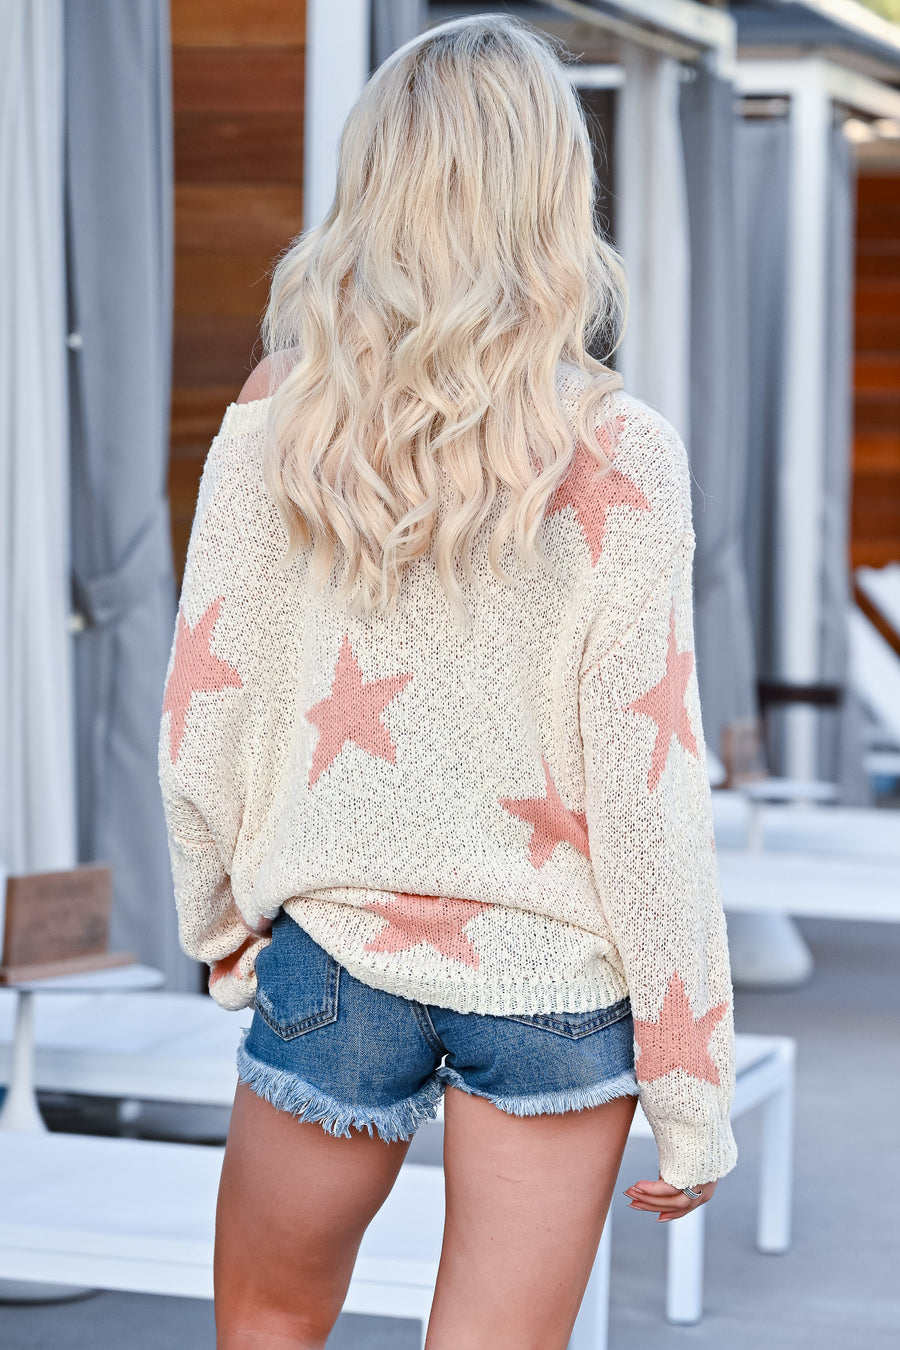 Wishes Fulfilled Star Sweater - Peachy womens trendy off the shoulder oversized sweater closet candy front